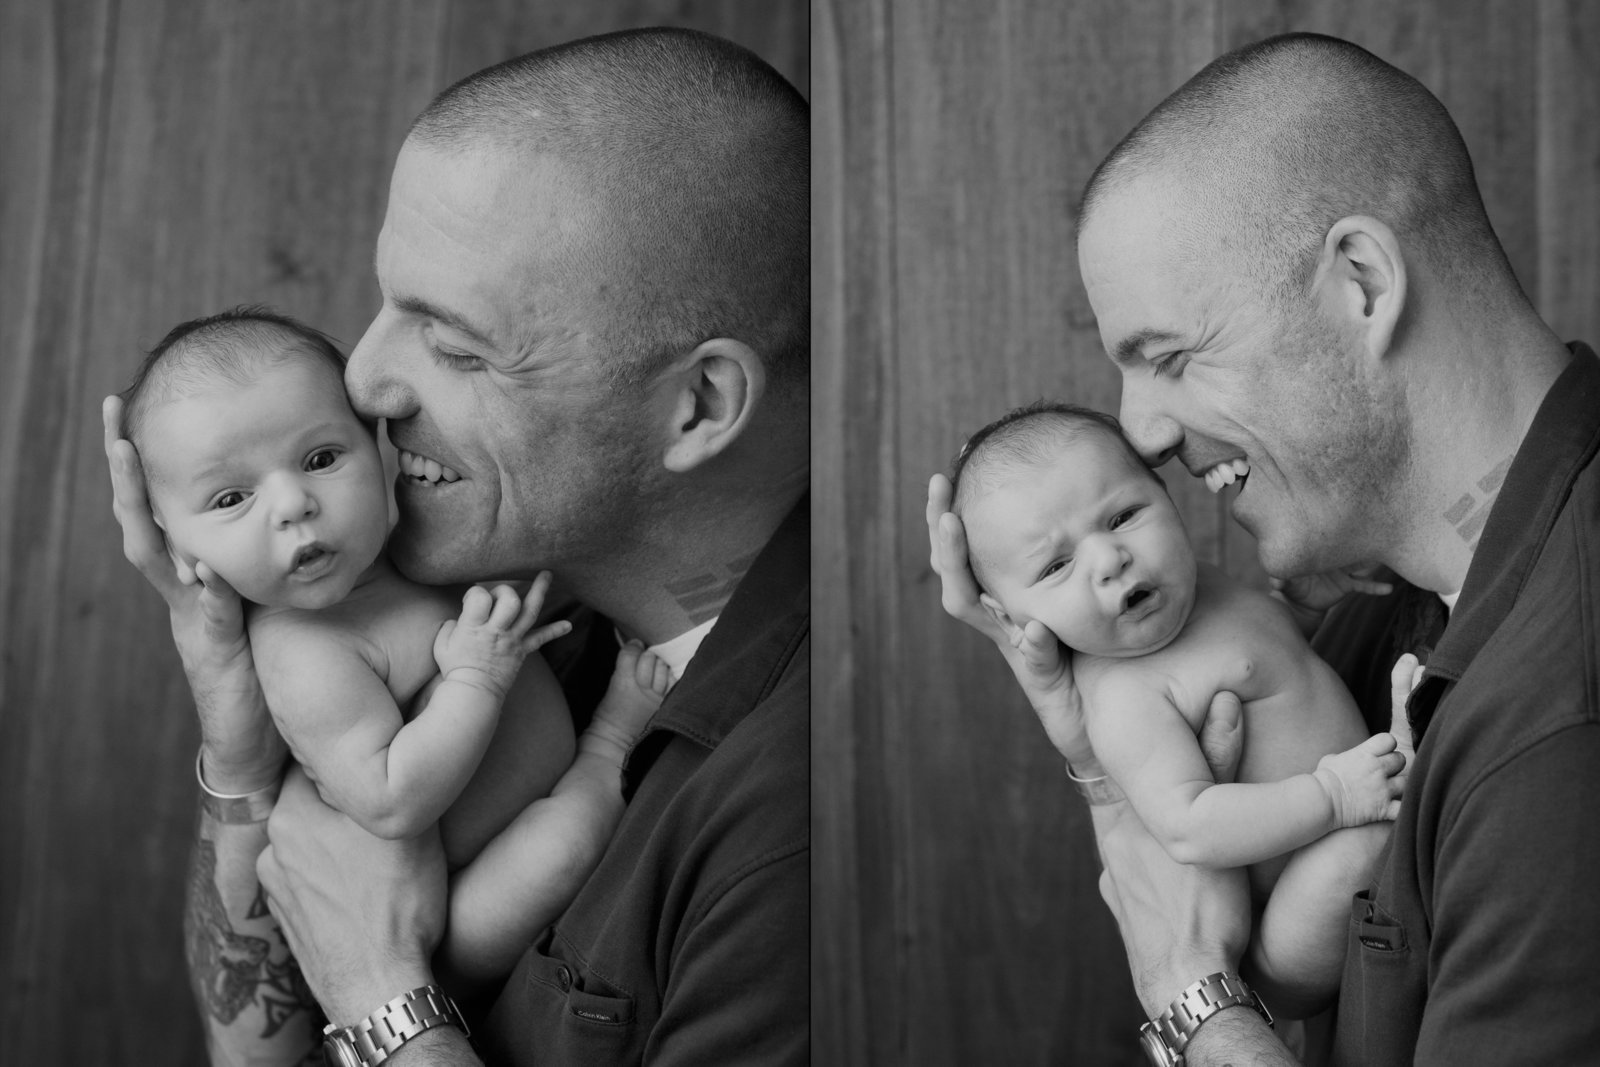 Funny dad and newborn baby photos from West Point by Hudson Valley professional photographer in Cornwall NY